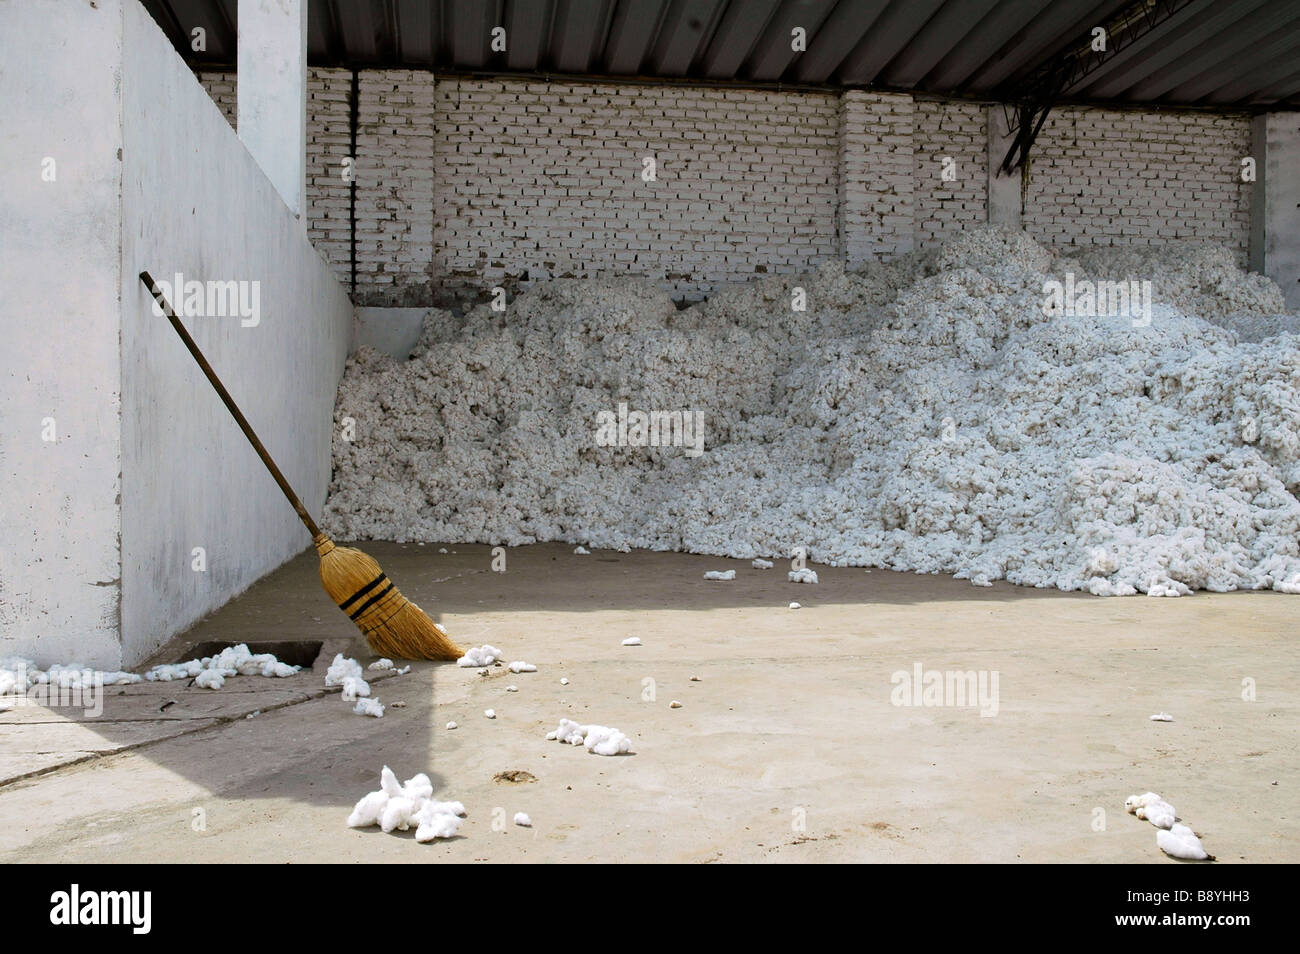 Broomstick leaning against white wall with large pile of raw ...